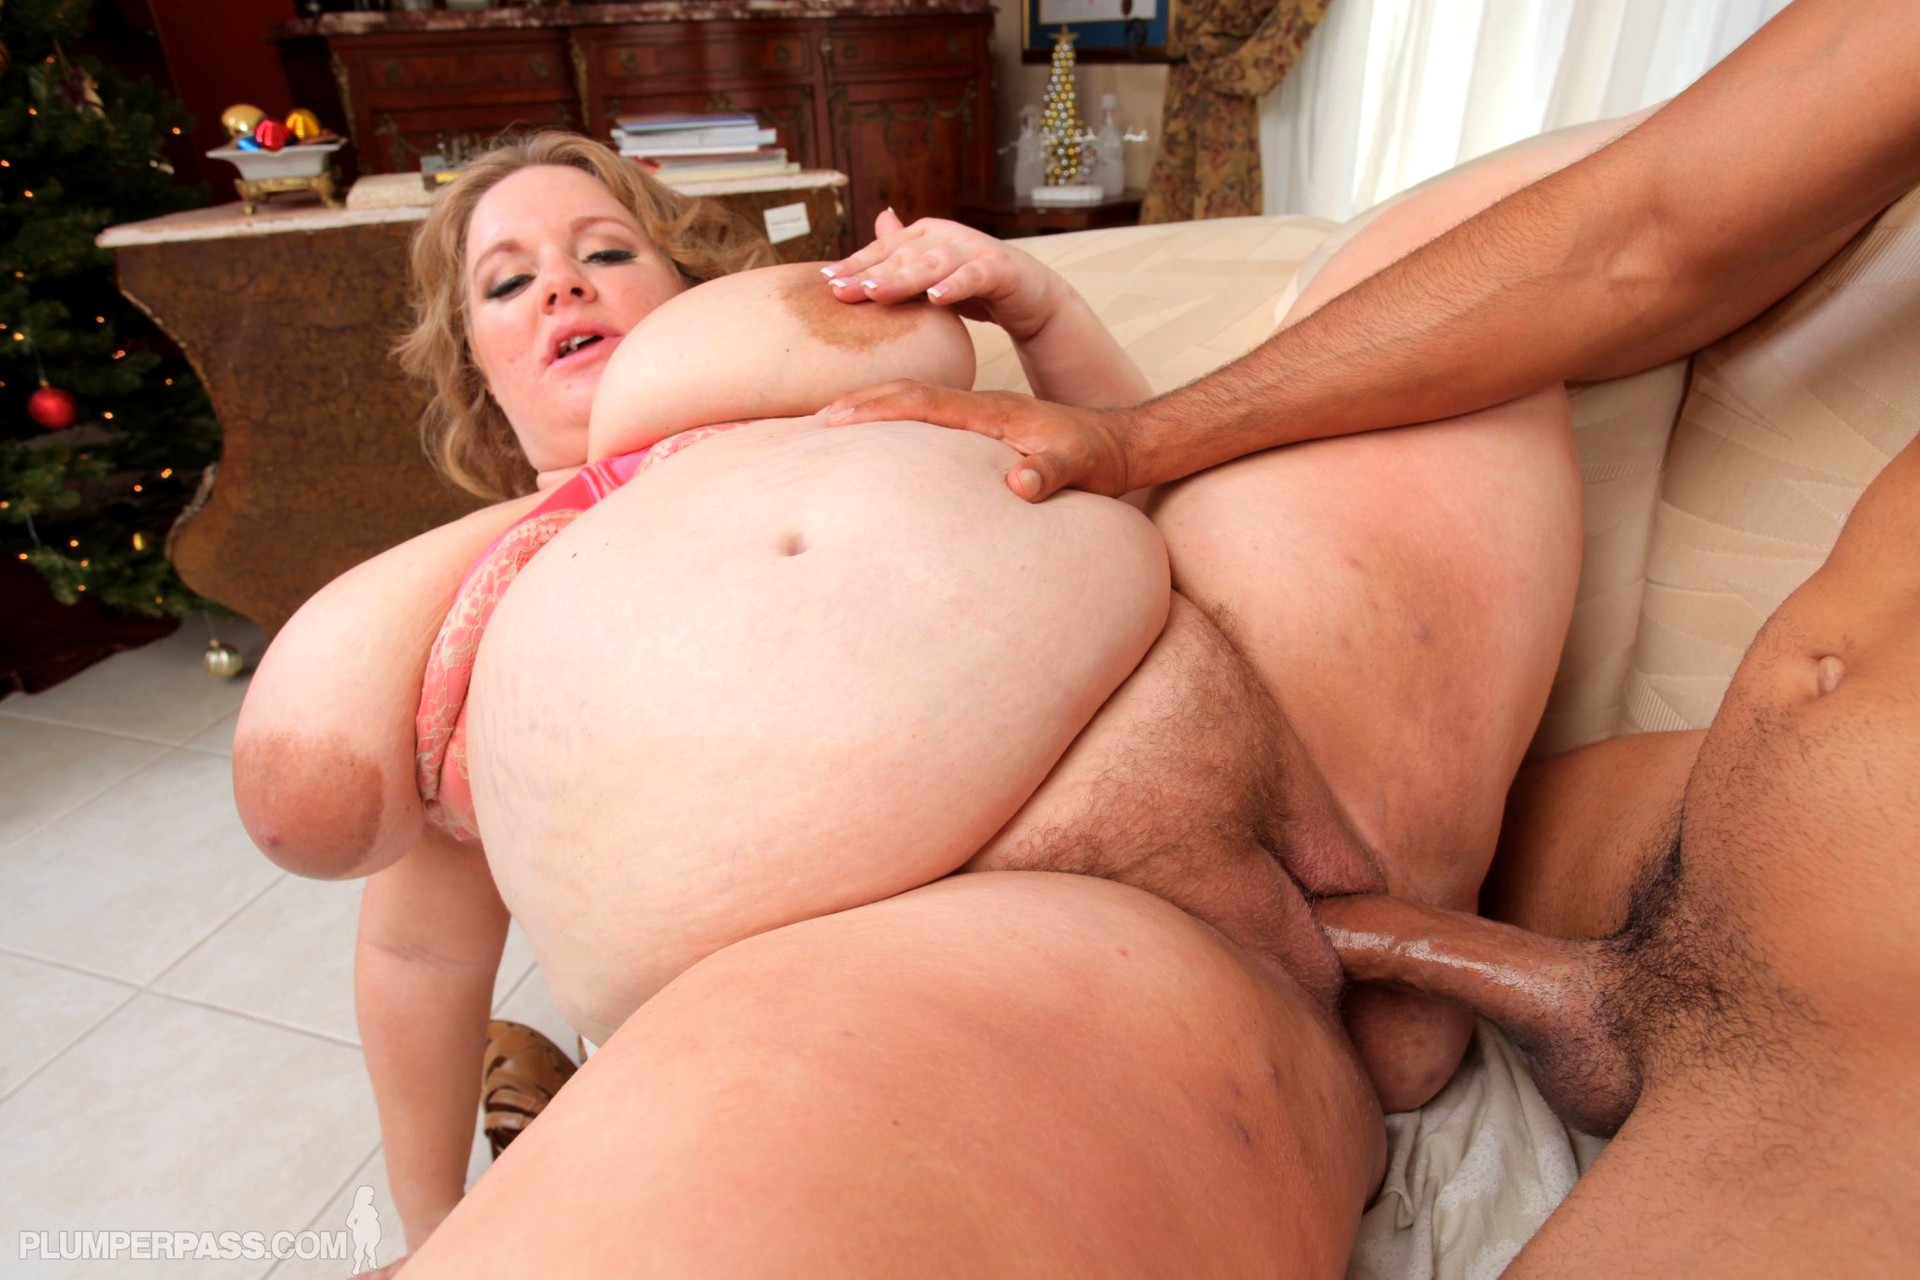 butt-sex-fat-women-sex-video-homade-femdom-bisexual